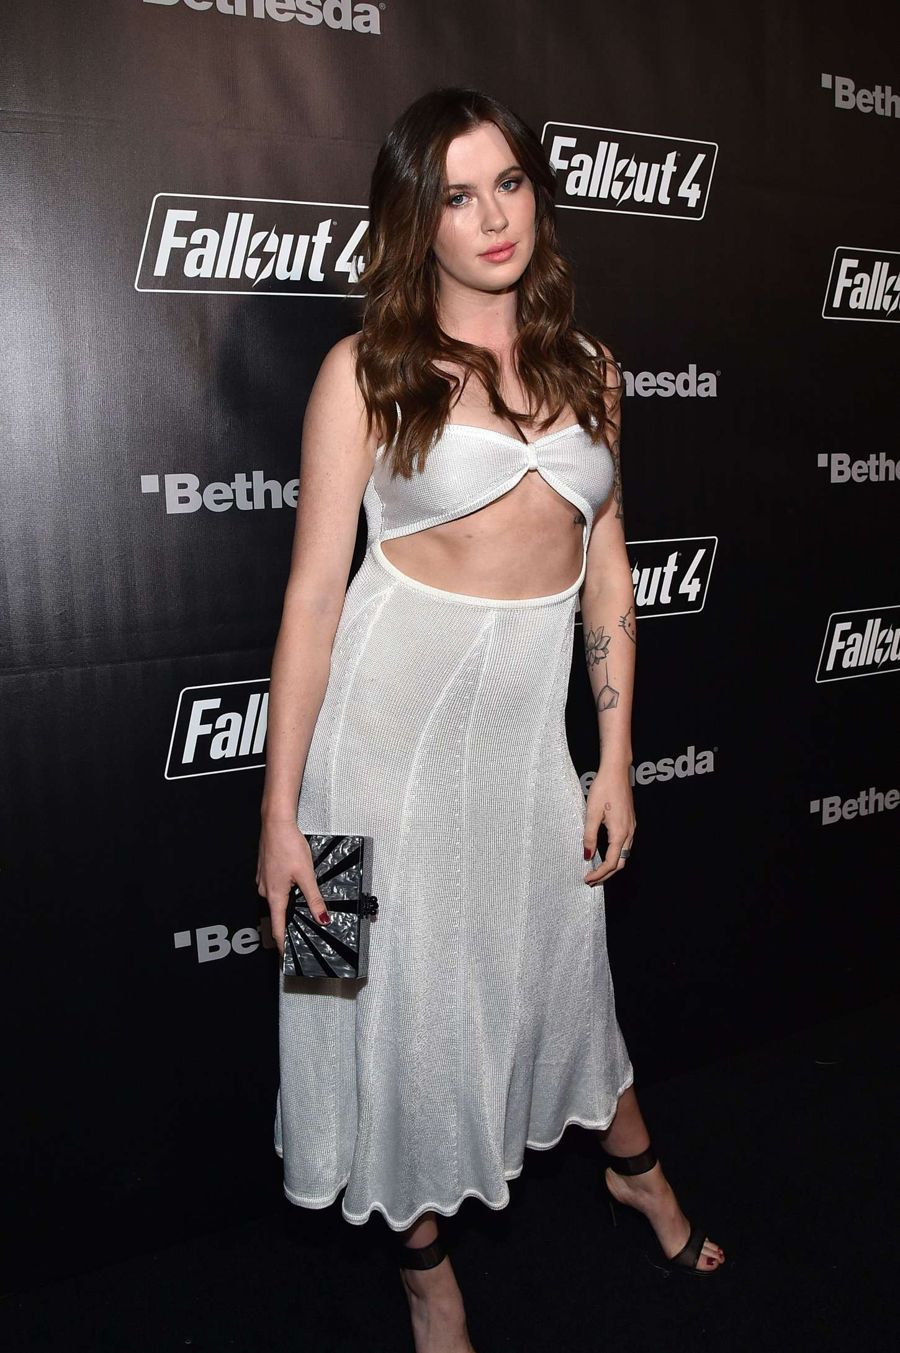 Ireland Baldwin - Fallout 4 Video Game Launch Event